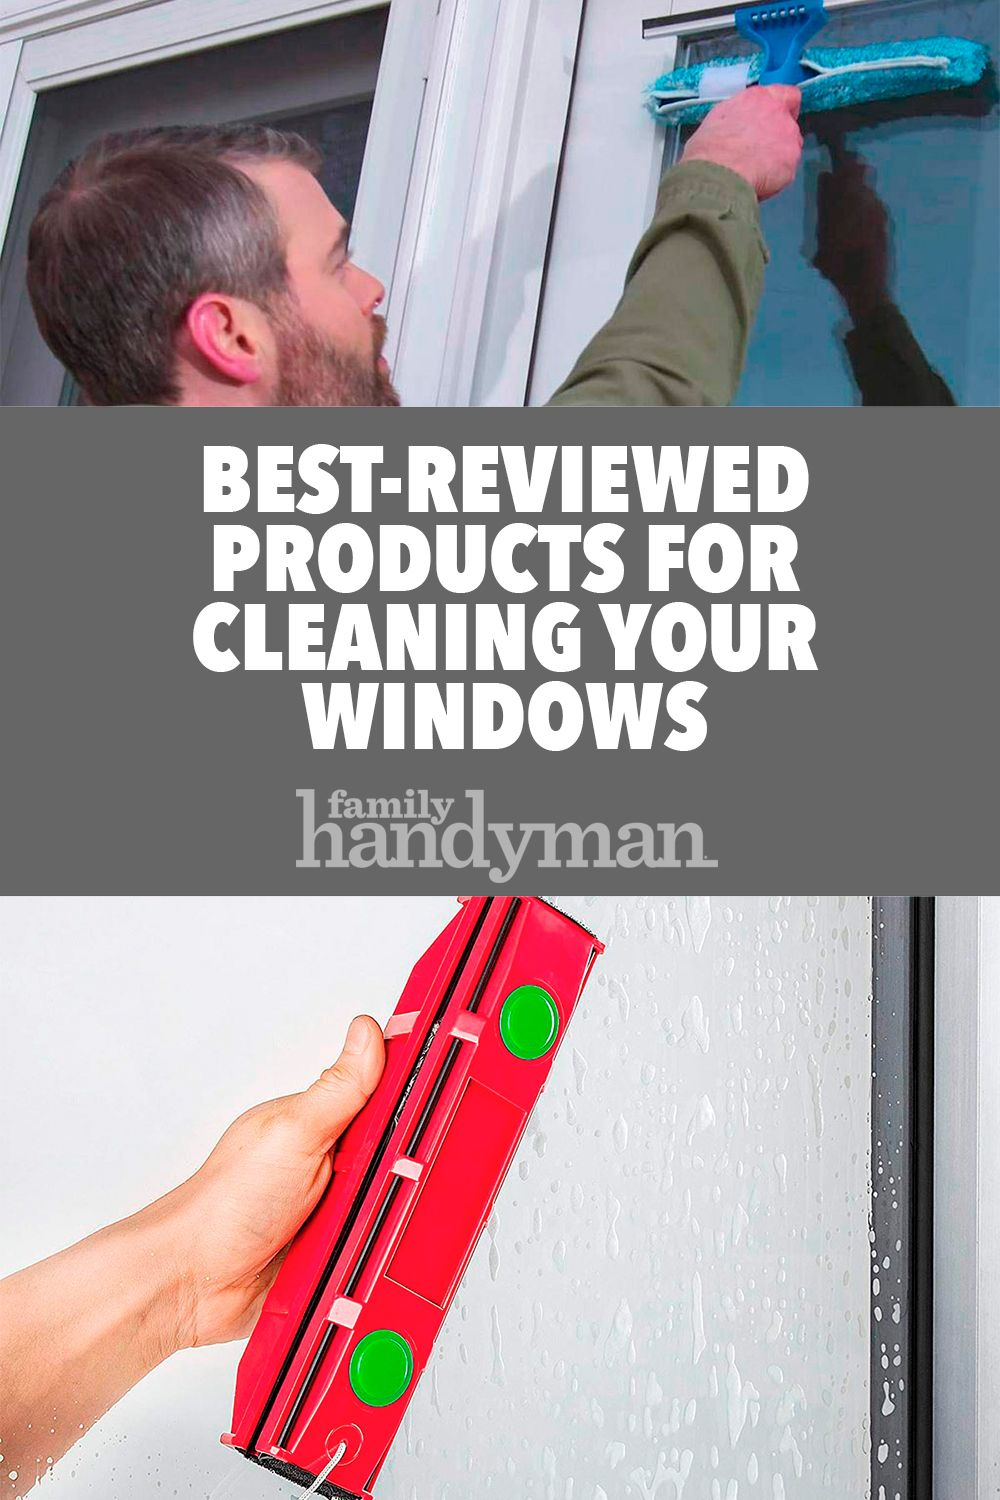 BestReviewed Products for Cleaning Your Windows